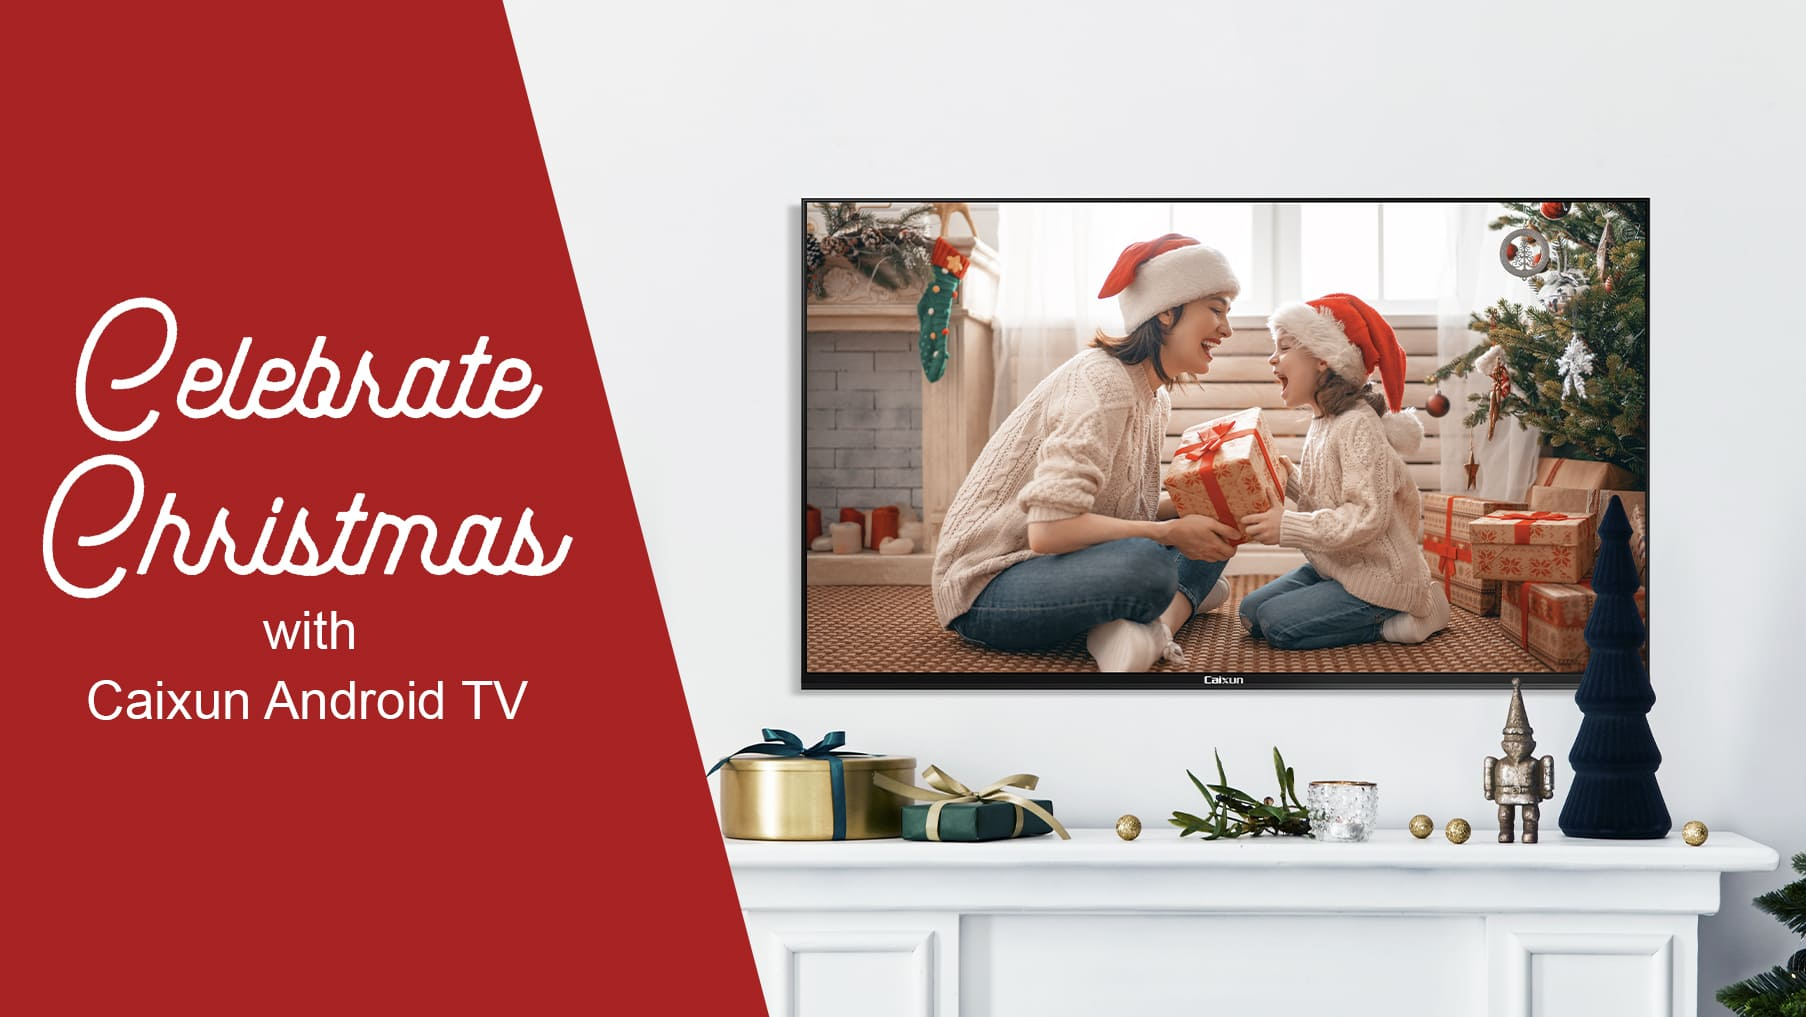 CELEBRATE CHRISTMAS WITH CAIXUN ANDROID TV